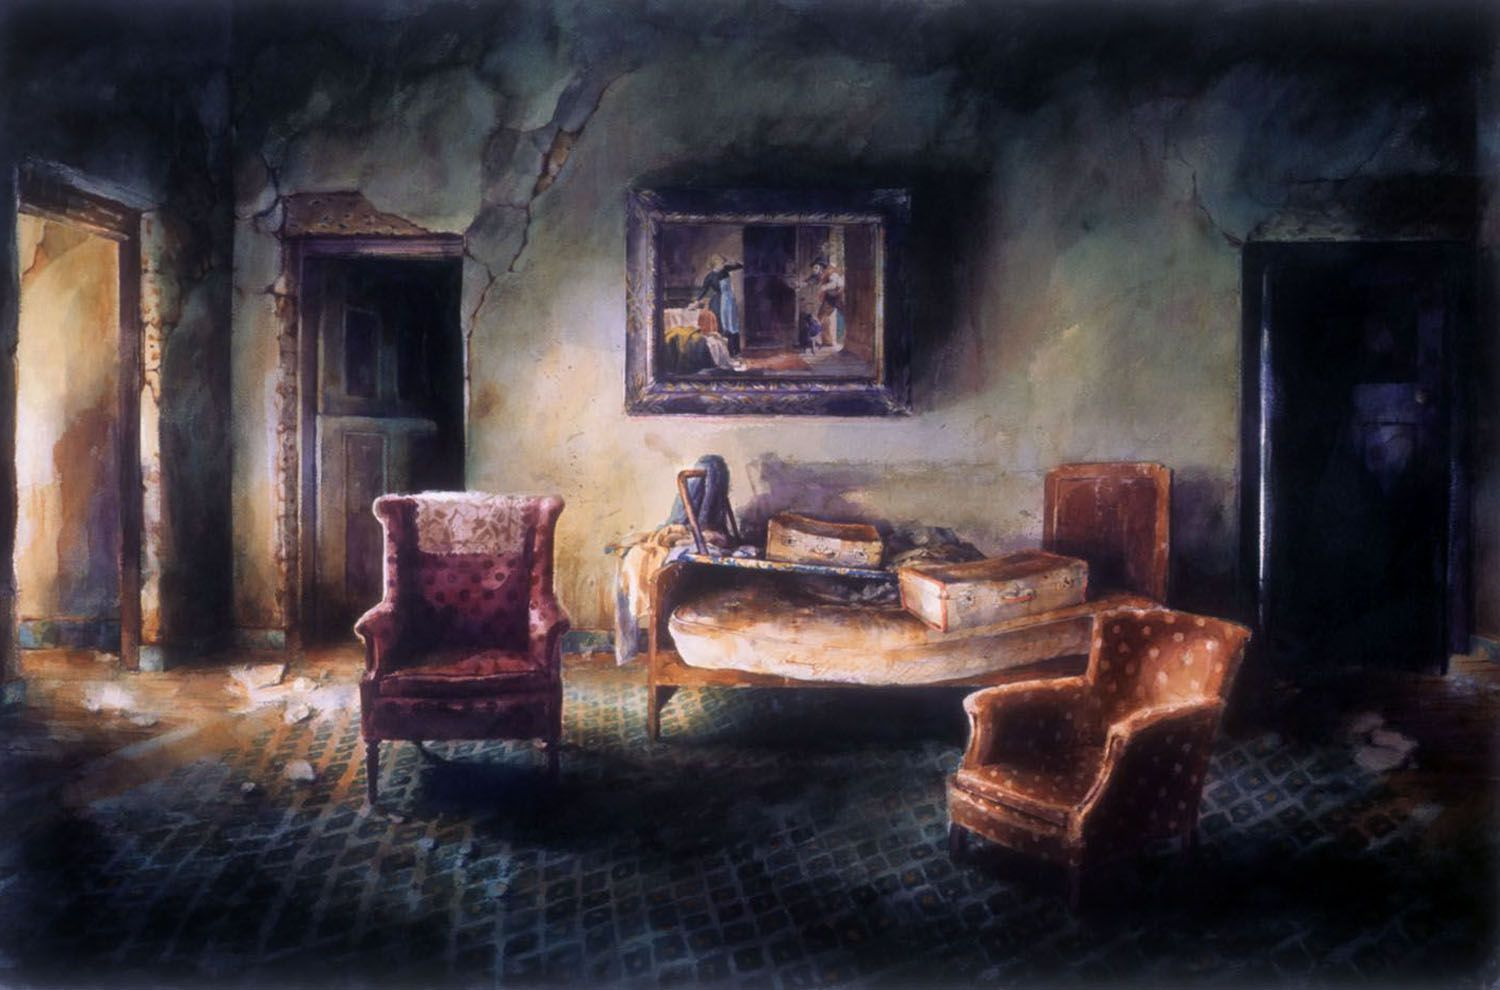 """Bed, painting, and two chairs with suitcases"" 1992. Watercolour on 300gms Arches paper. 80 x 124cm"